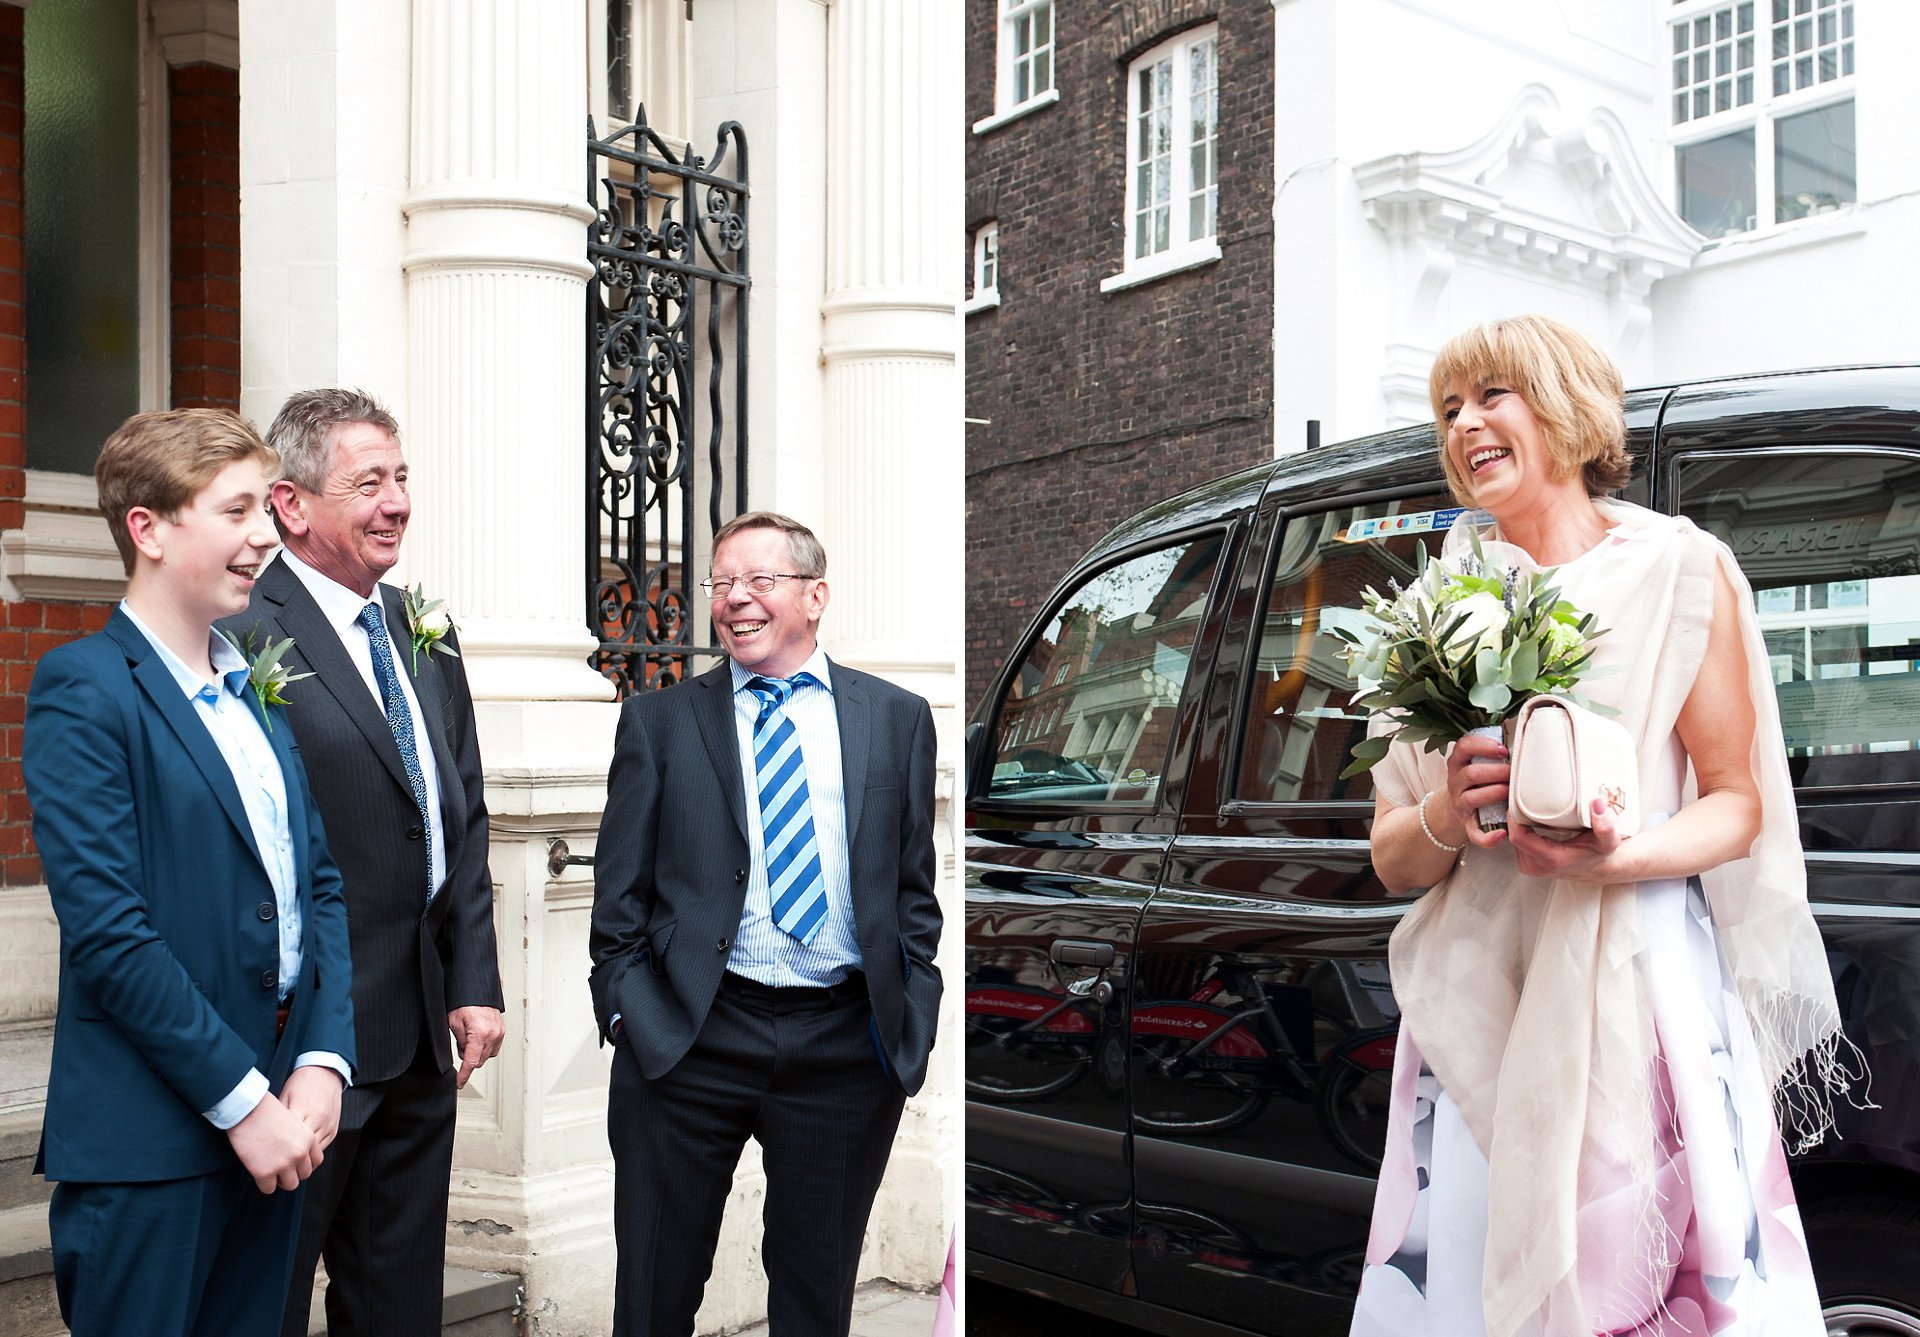 Melanie arrives in London black cab for her wedding to Sid at Mayfair Library on South Audley Street